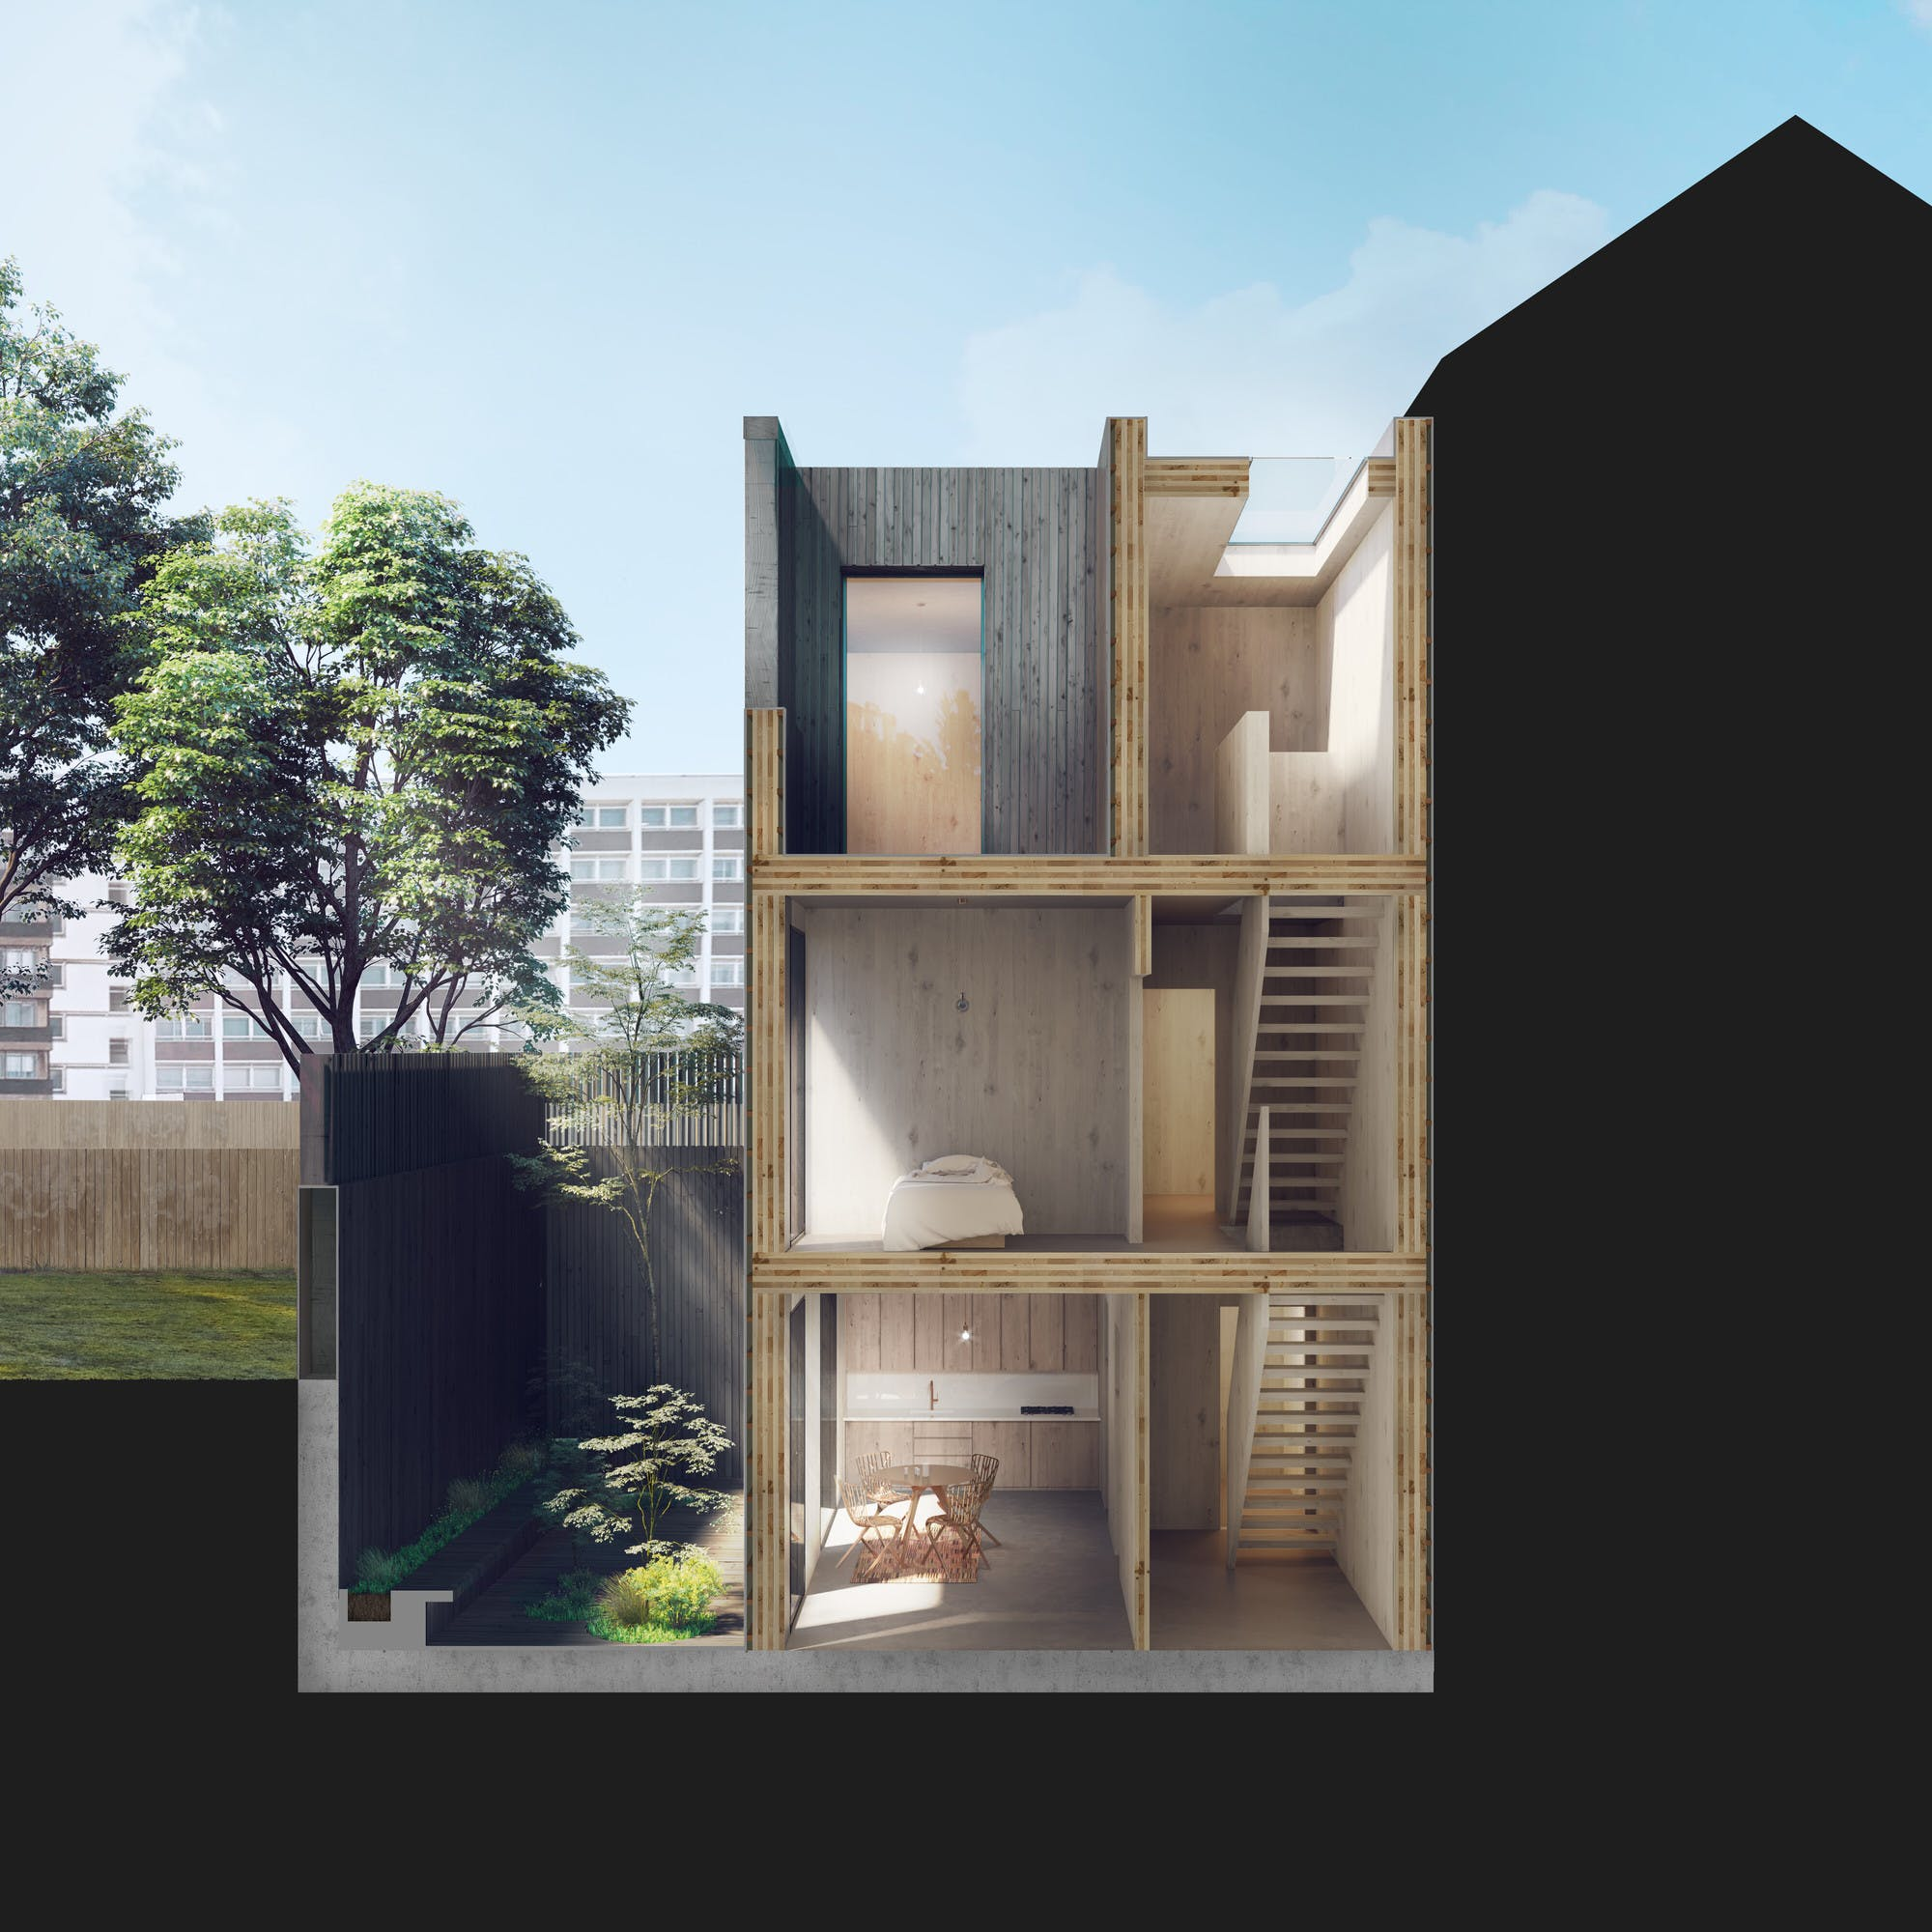 Cube Haus Commissions Top Architects To Design Modular Affordable